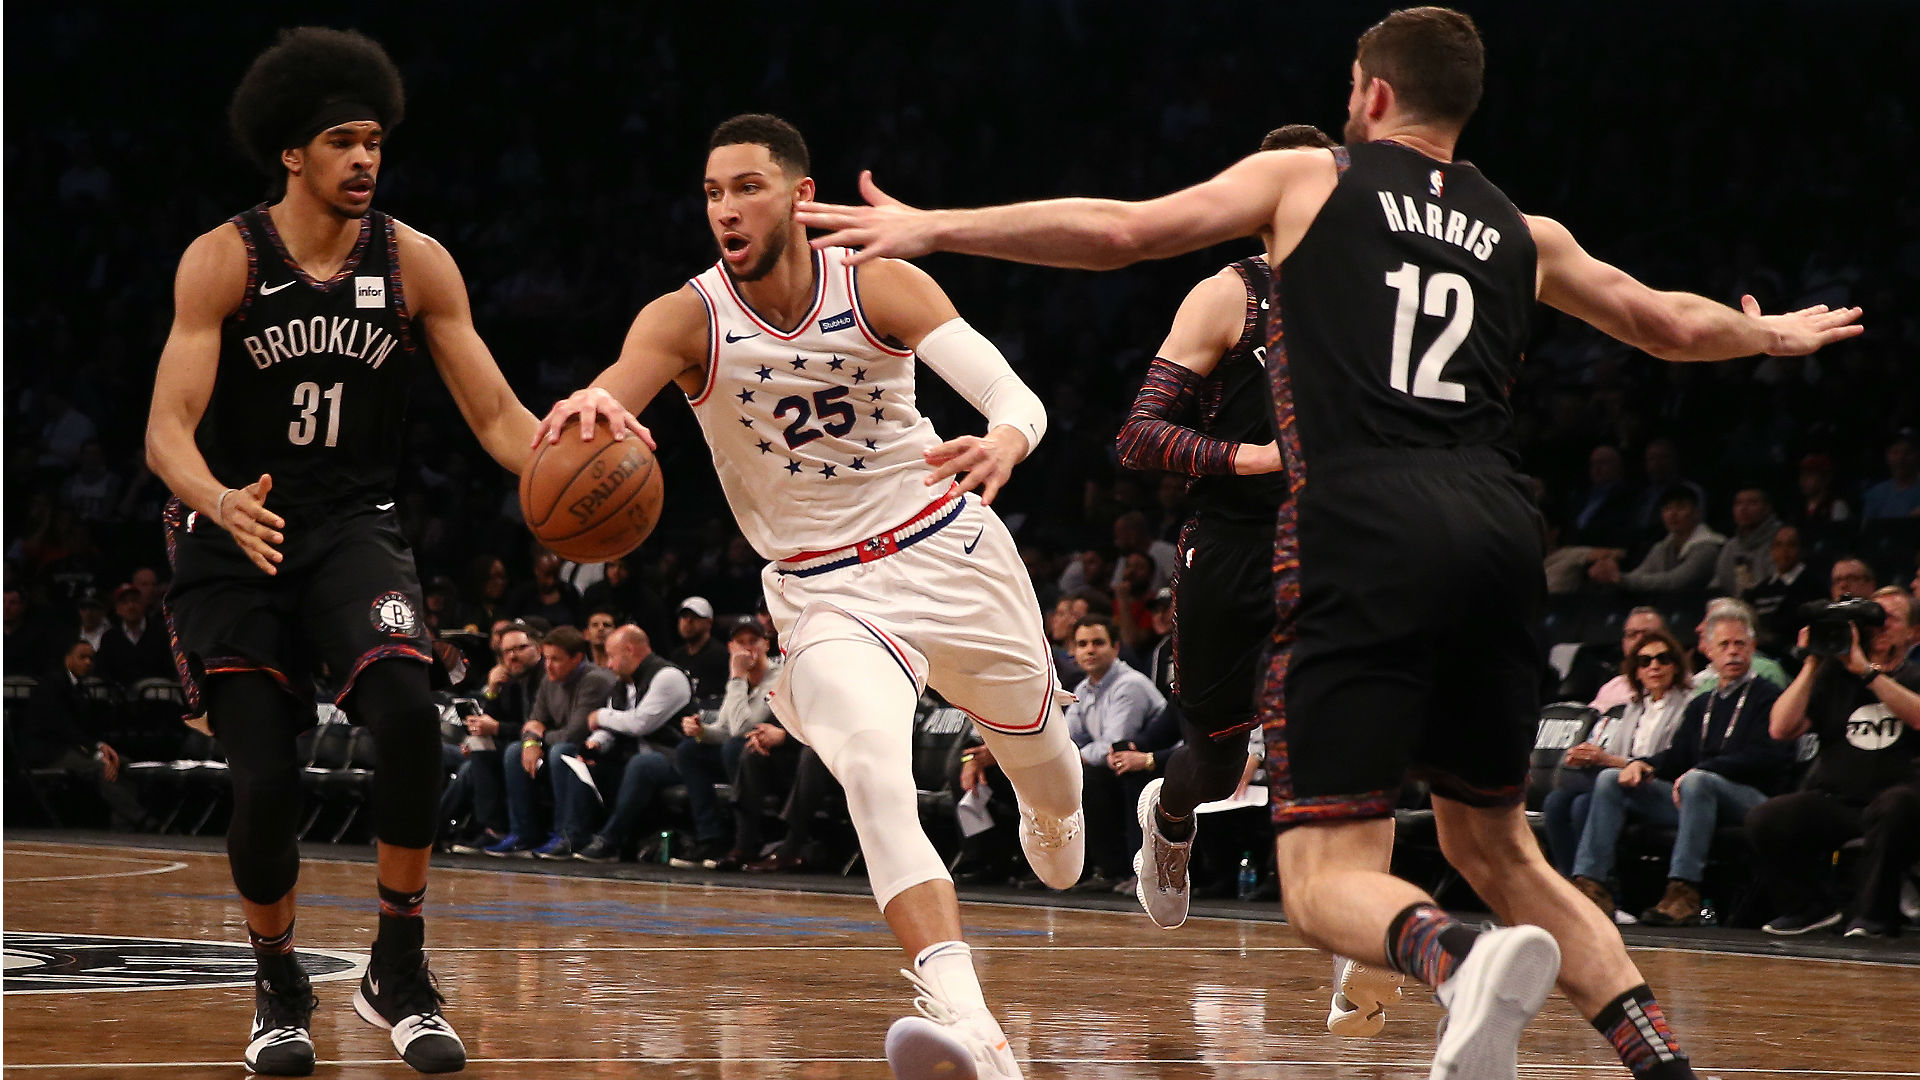 NBA playoffs wrap 2019: 76ers win without Joel Embiid; Warriors bounce back in big way vs. Clippers